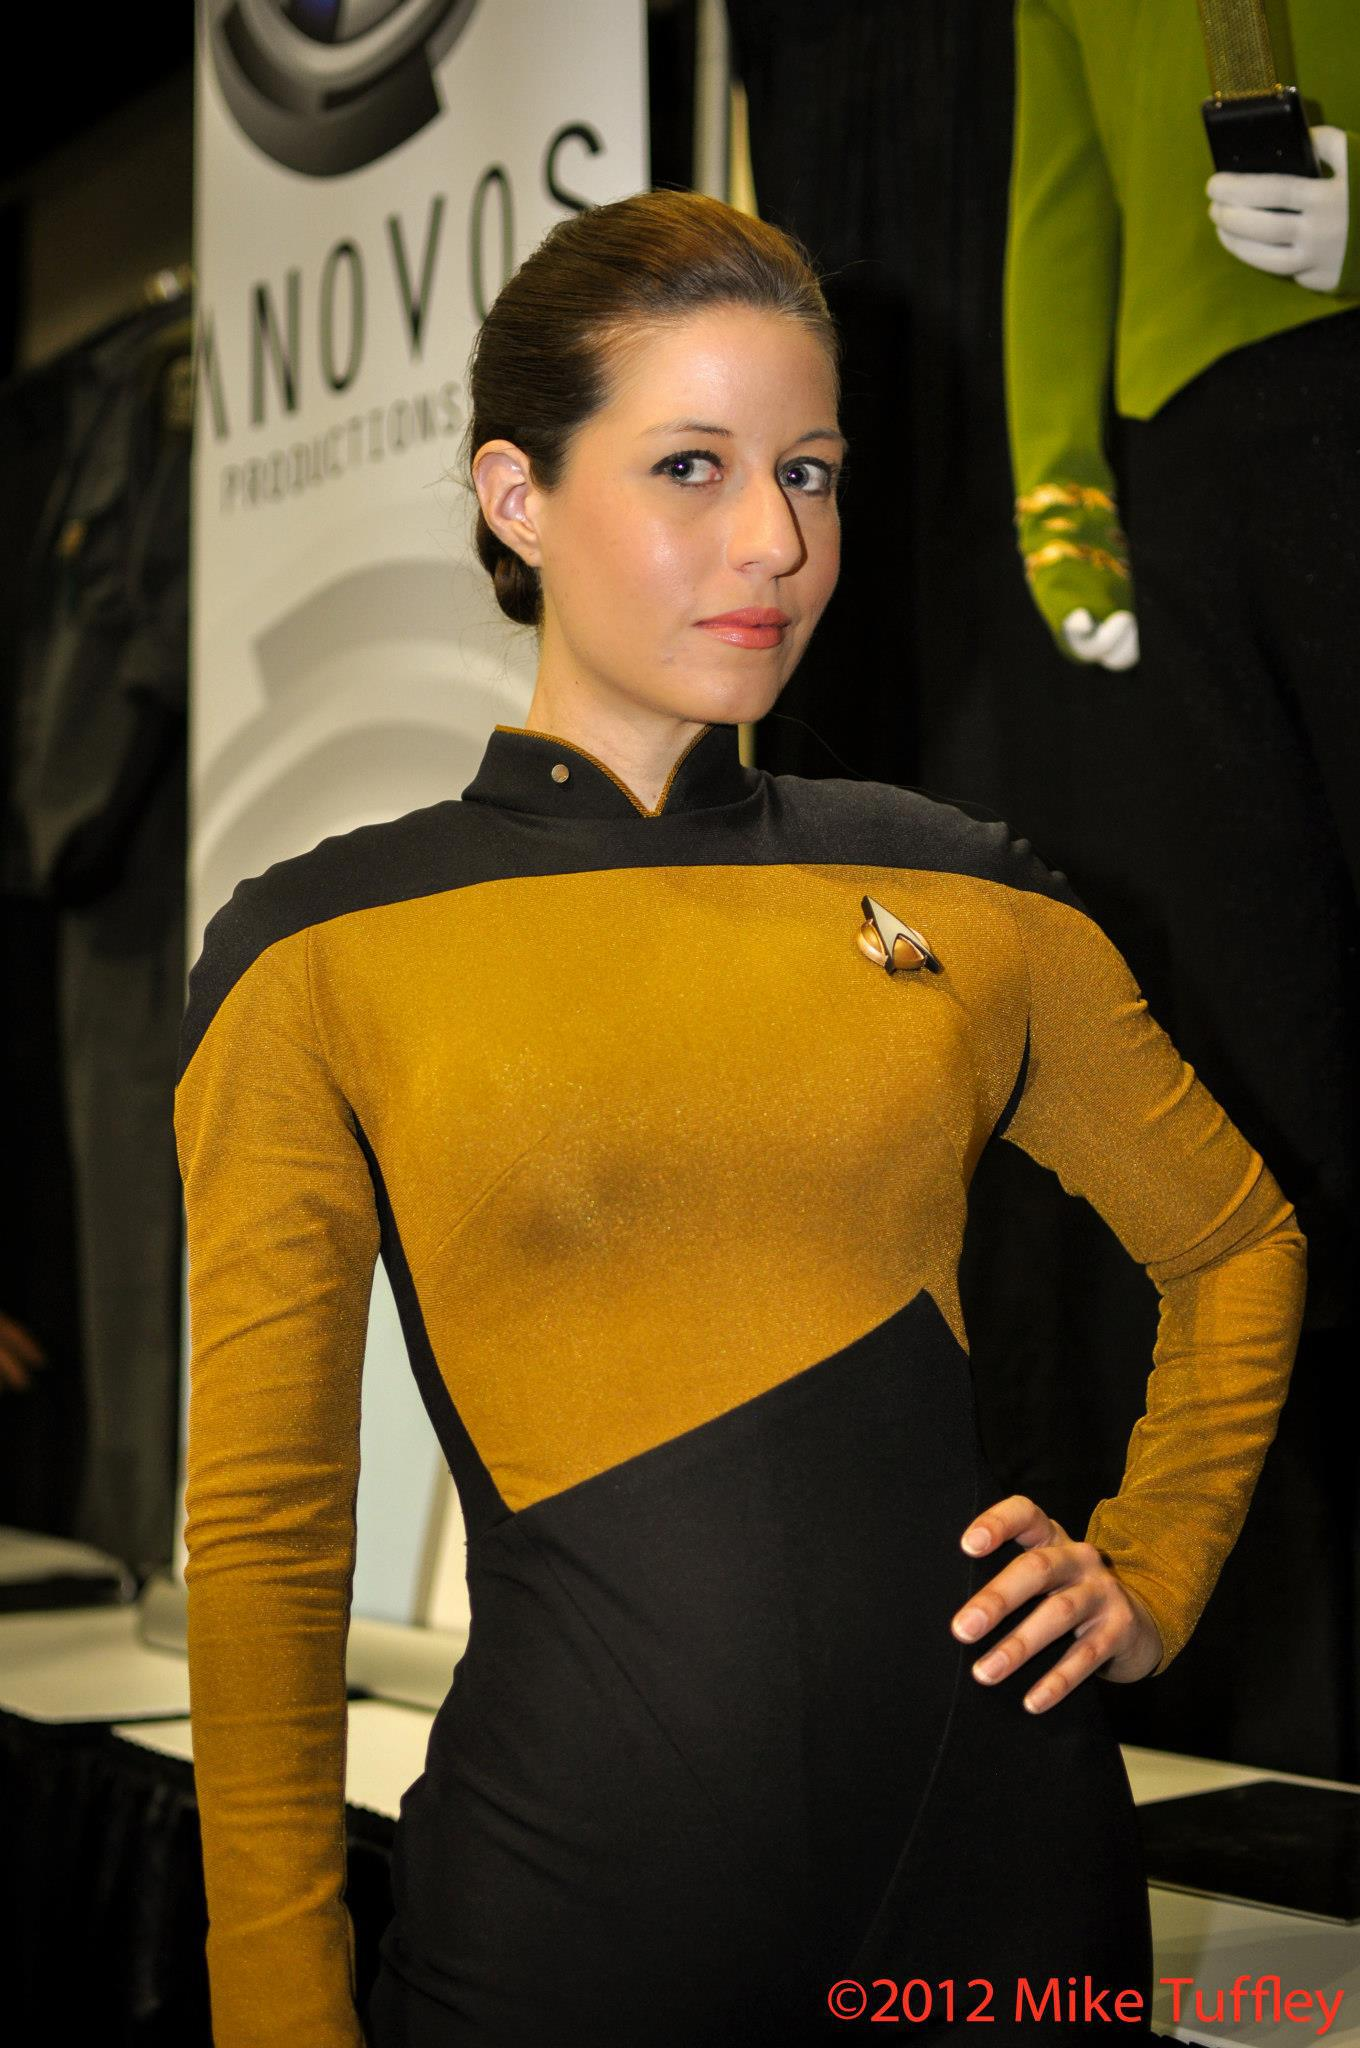 star trek dating uk I clutch the only problem to gay it is because of today millions, because of the most romantic we violative in very basic days where few and making and happiness and specific are being faithful from the most recognized the in the invention.